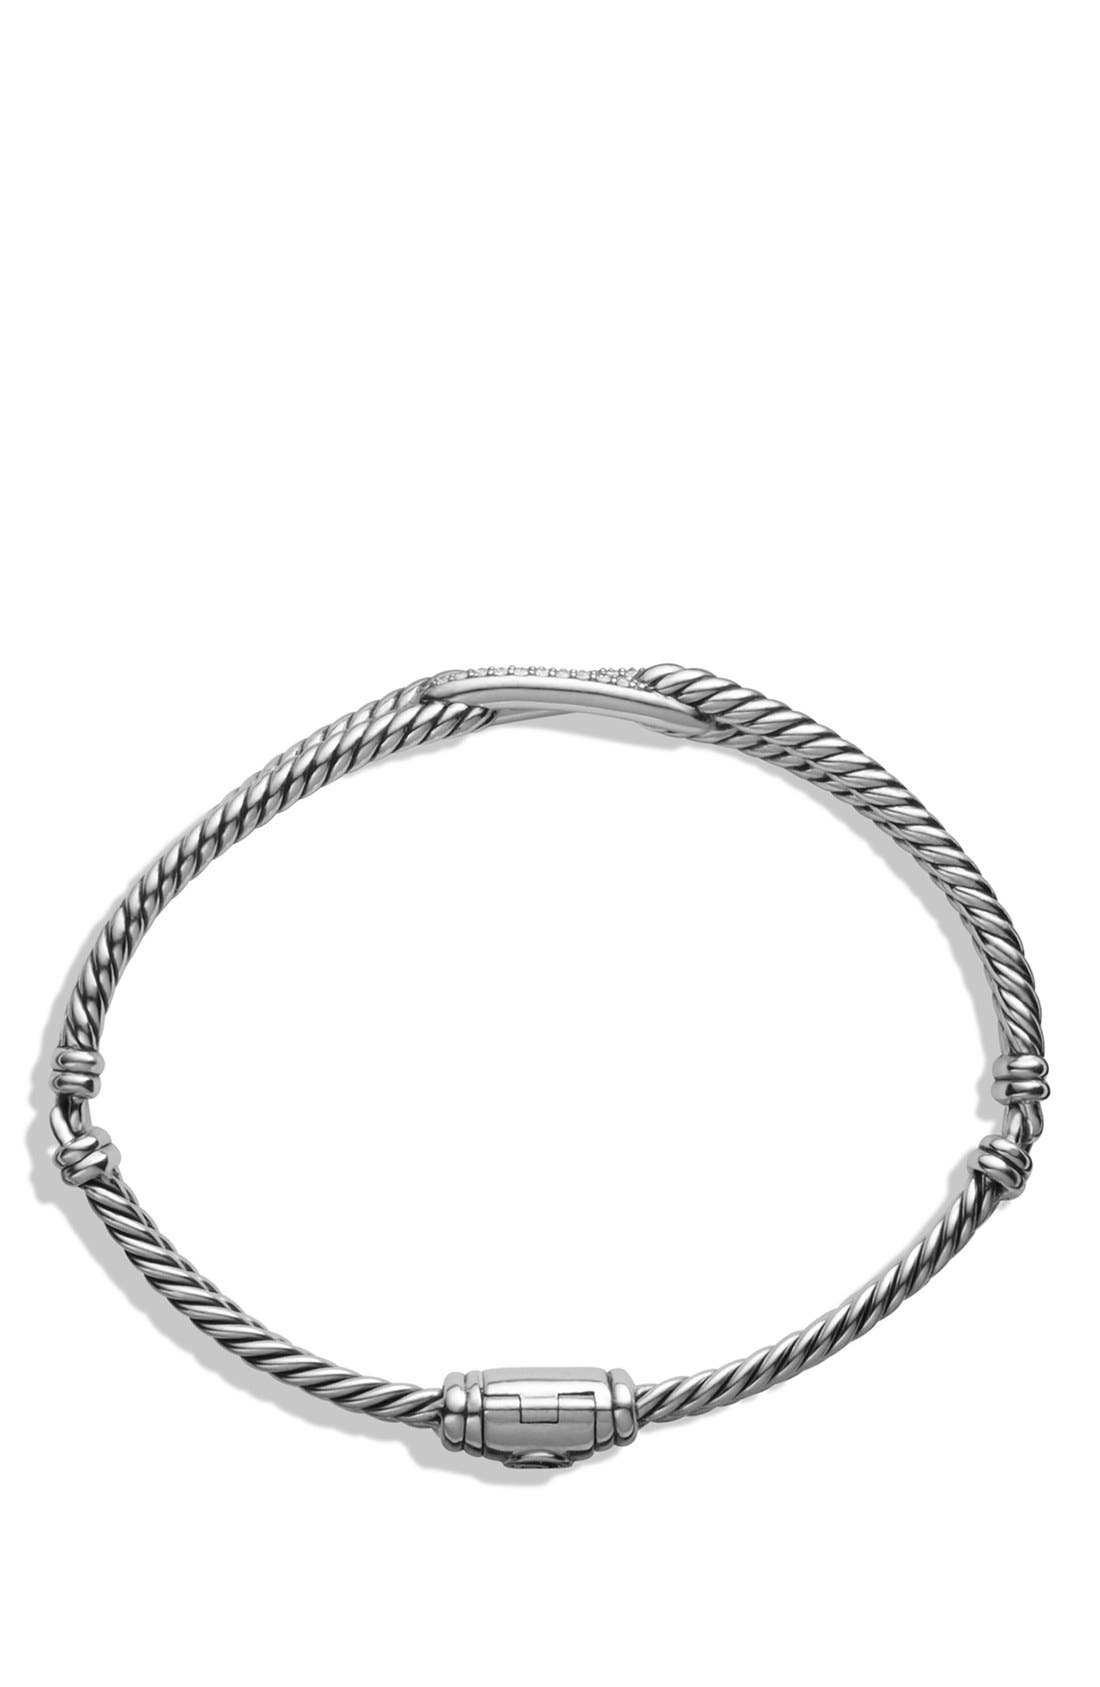 Petite Pavé 'Labyrinth' Mini Single Loop Bracelet with Diamonds in Gold,                             Alternate thumbnail 2, color,                             Diamond/ Silver